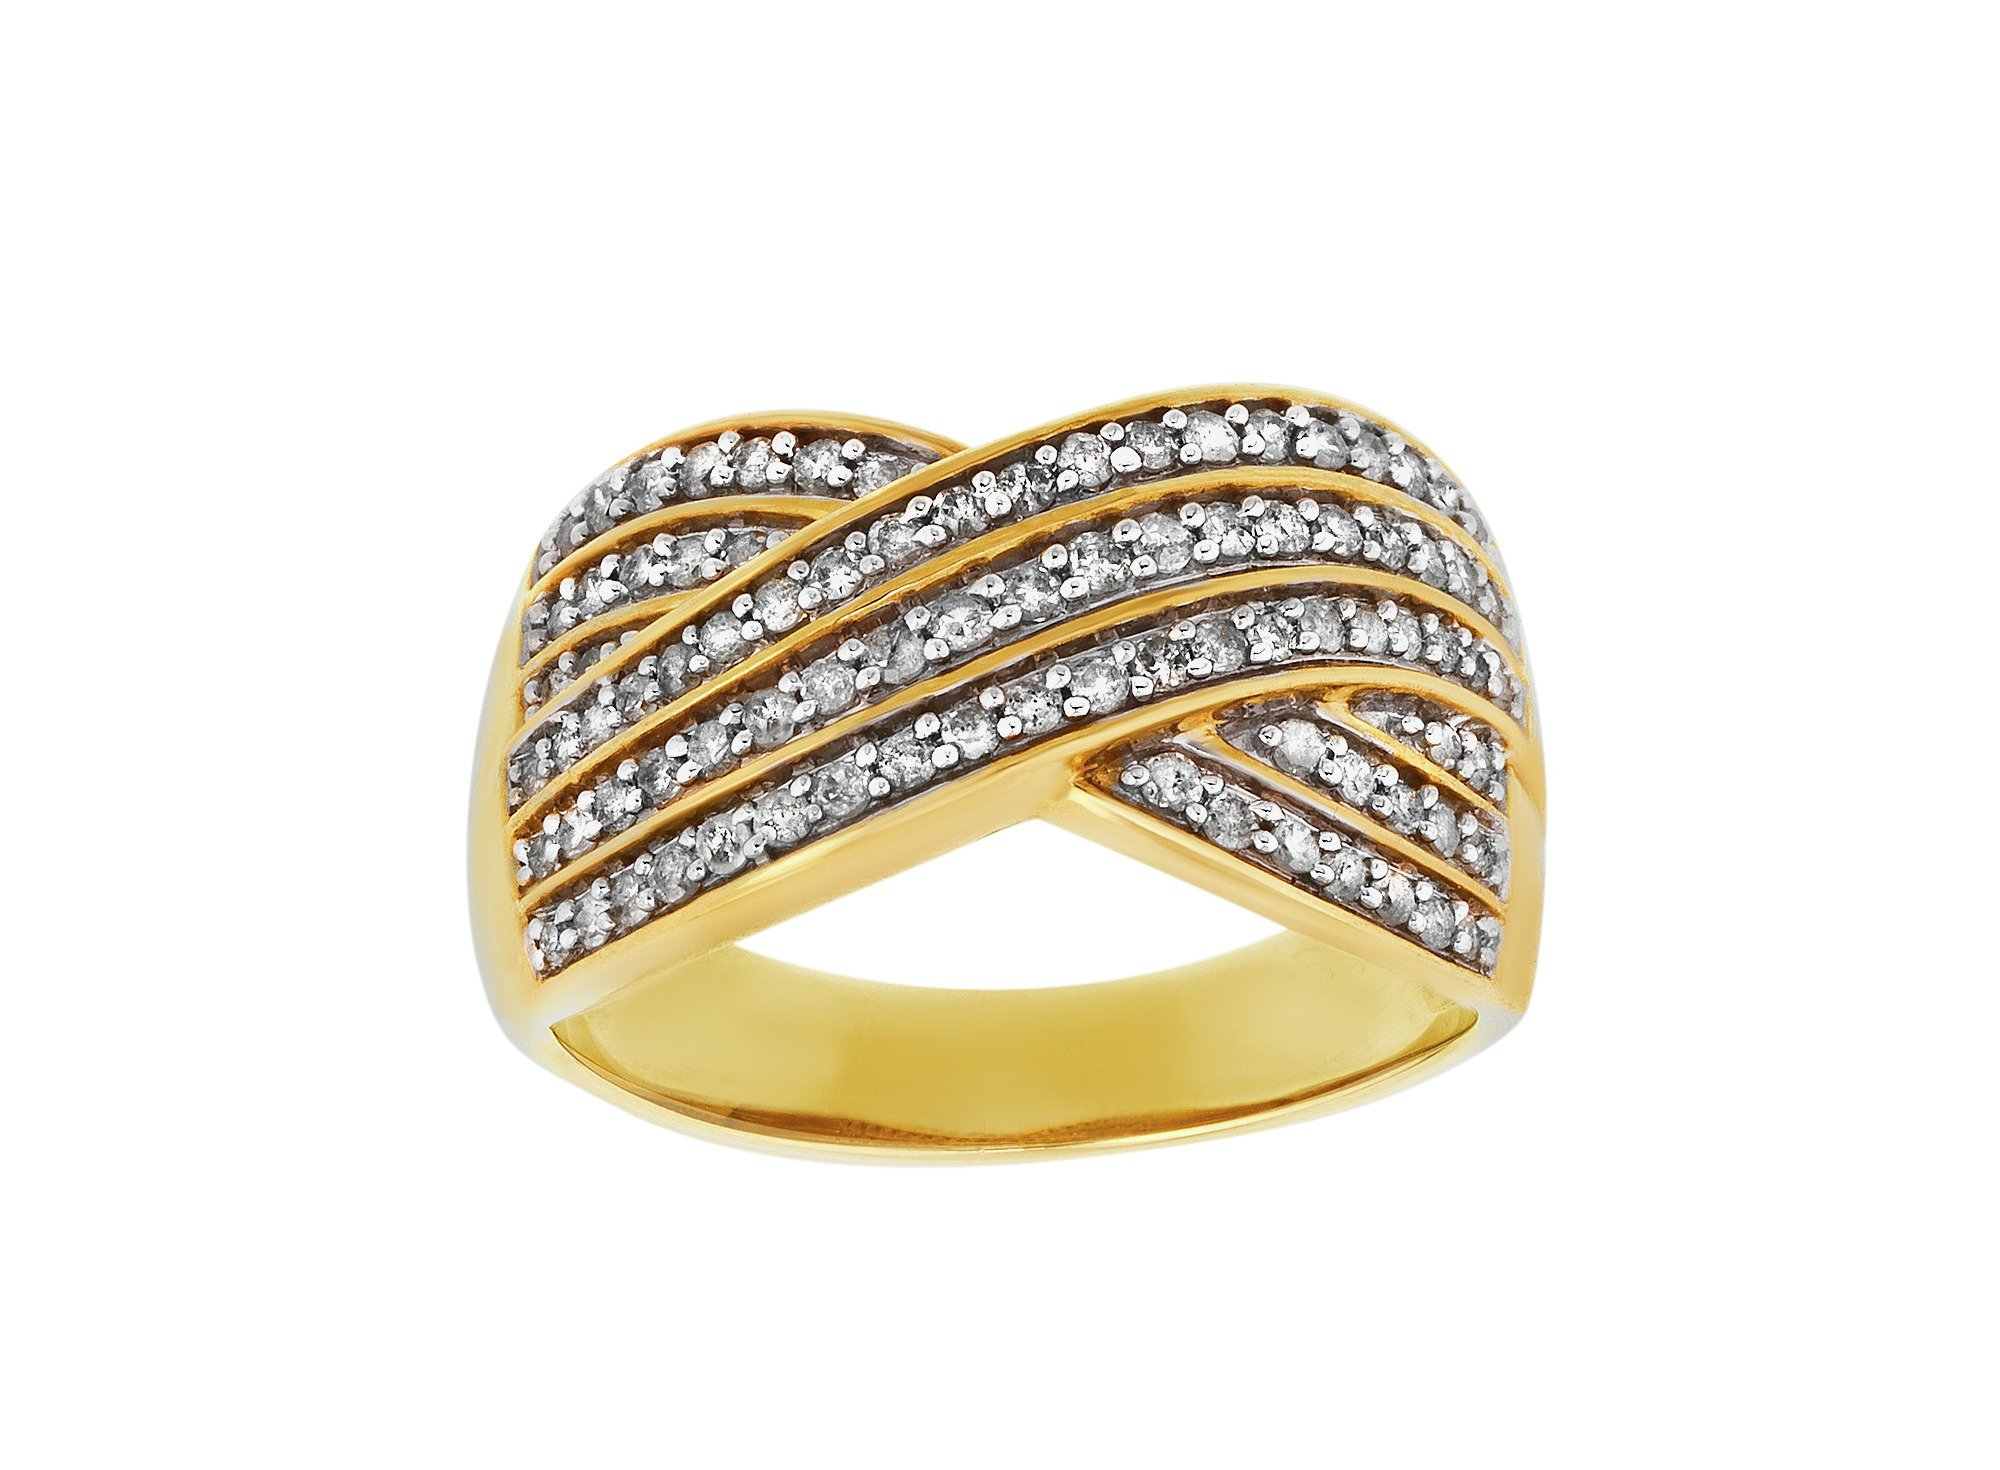 Buy 9ct Gold 0 50ct tw Diamond Cluster Ring at Argos Your